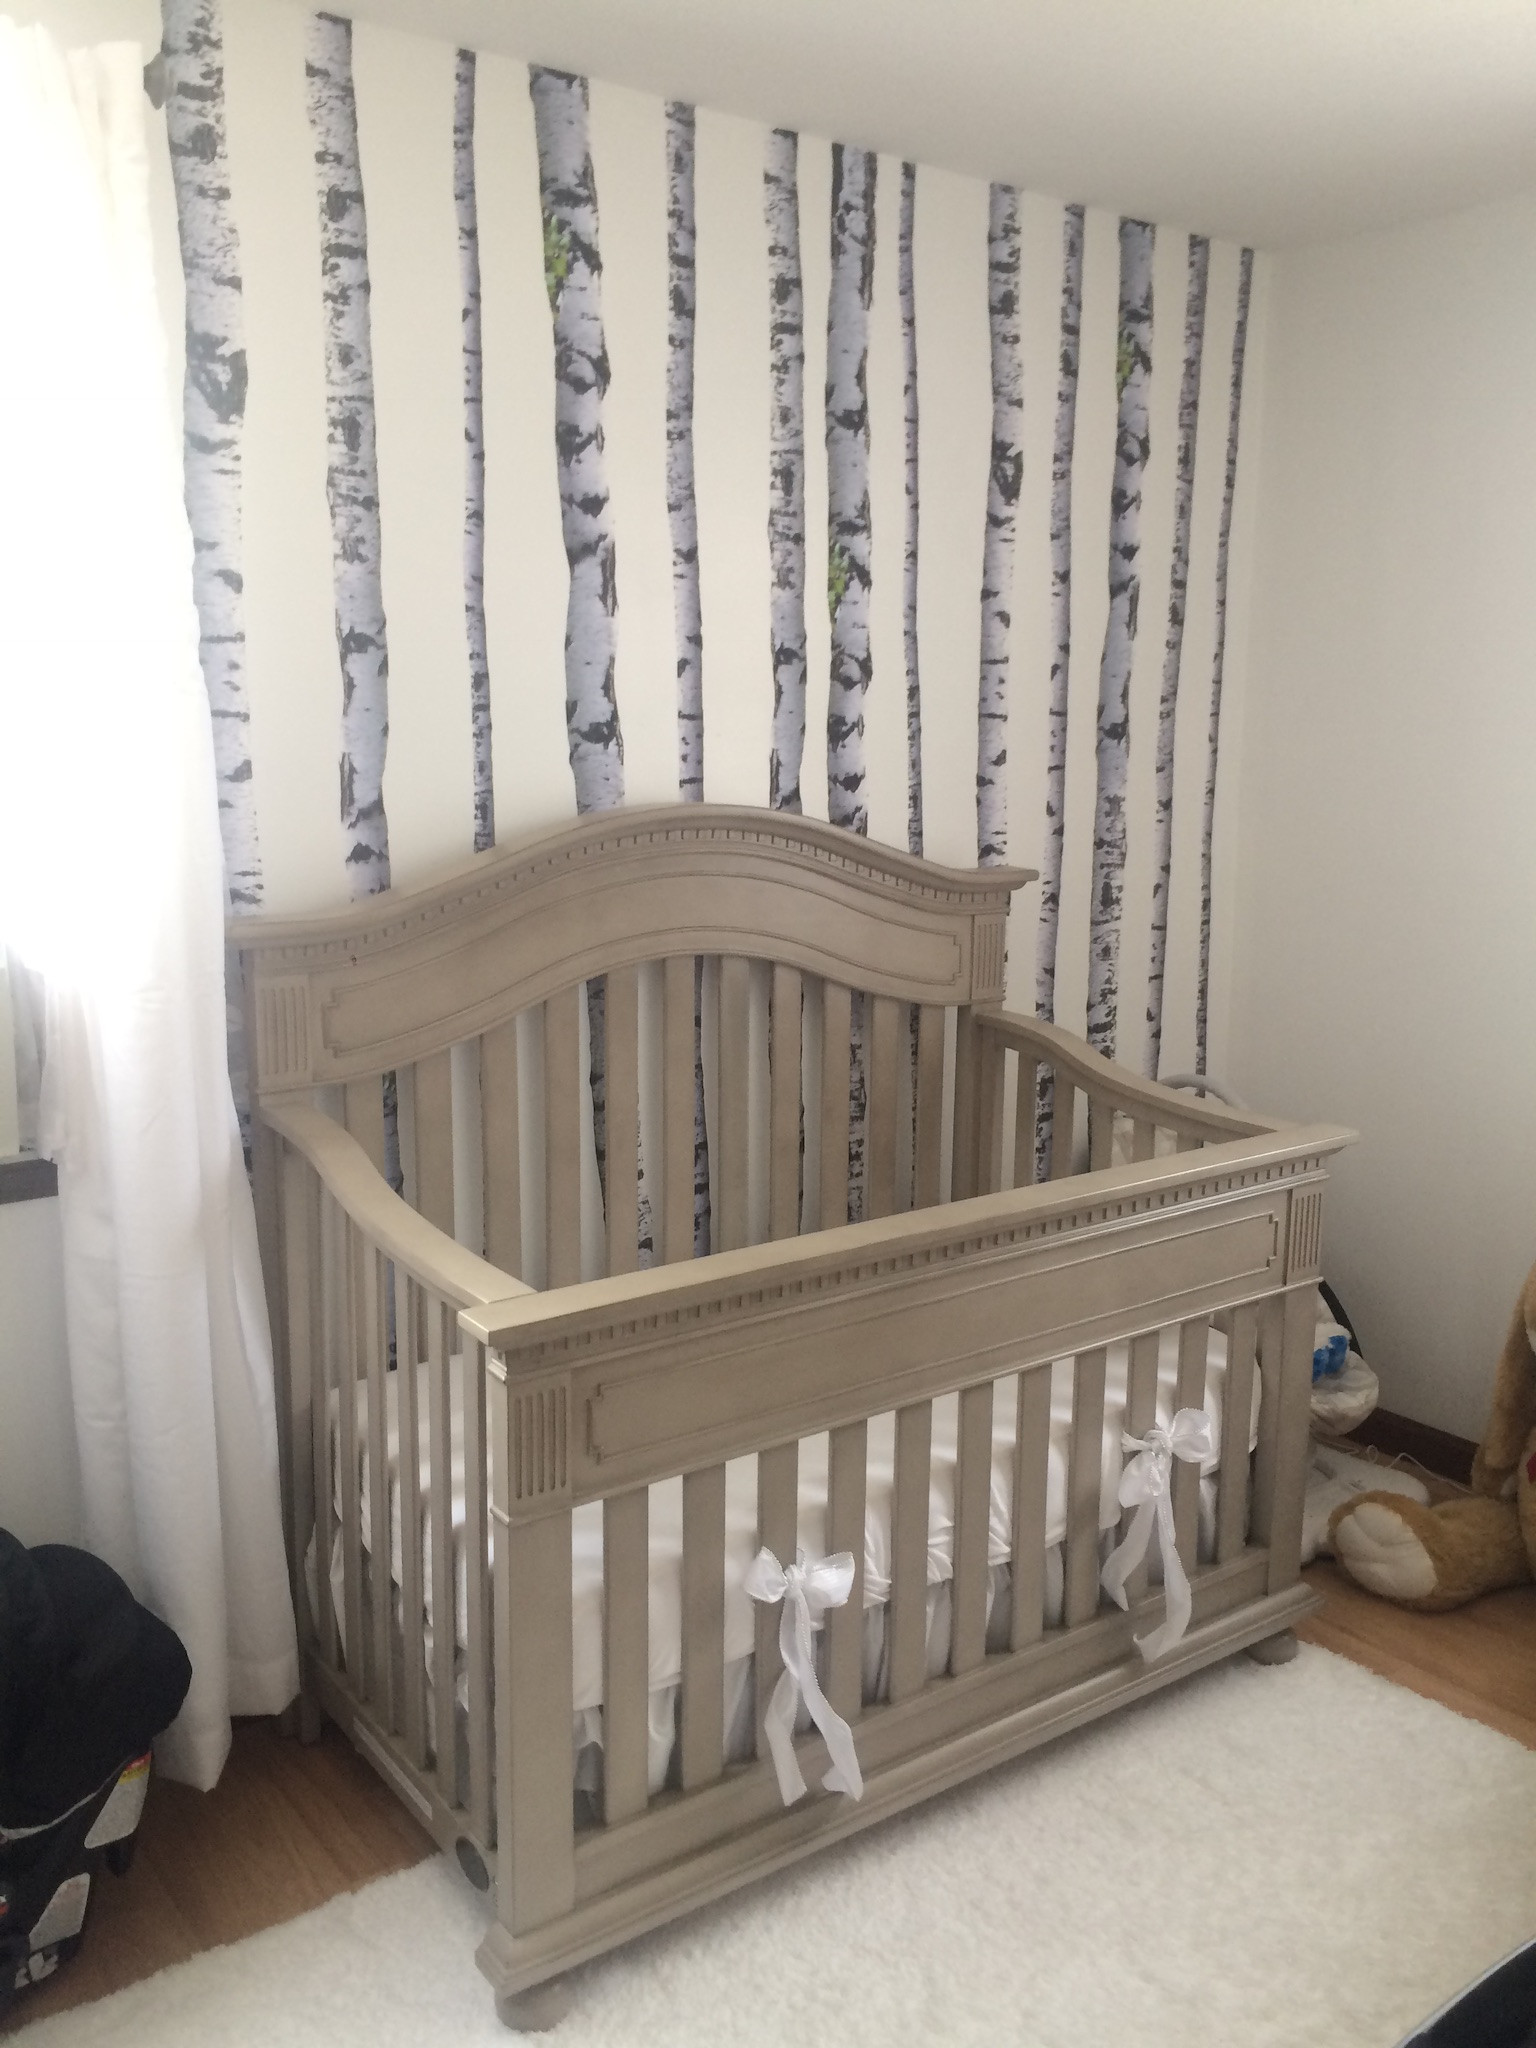 Dolce Babi Crib Convertible to Toddler Bed